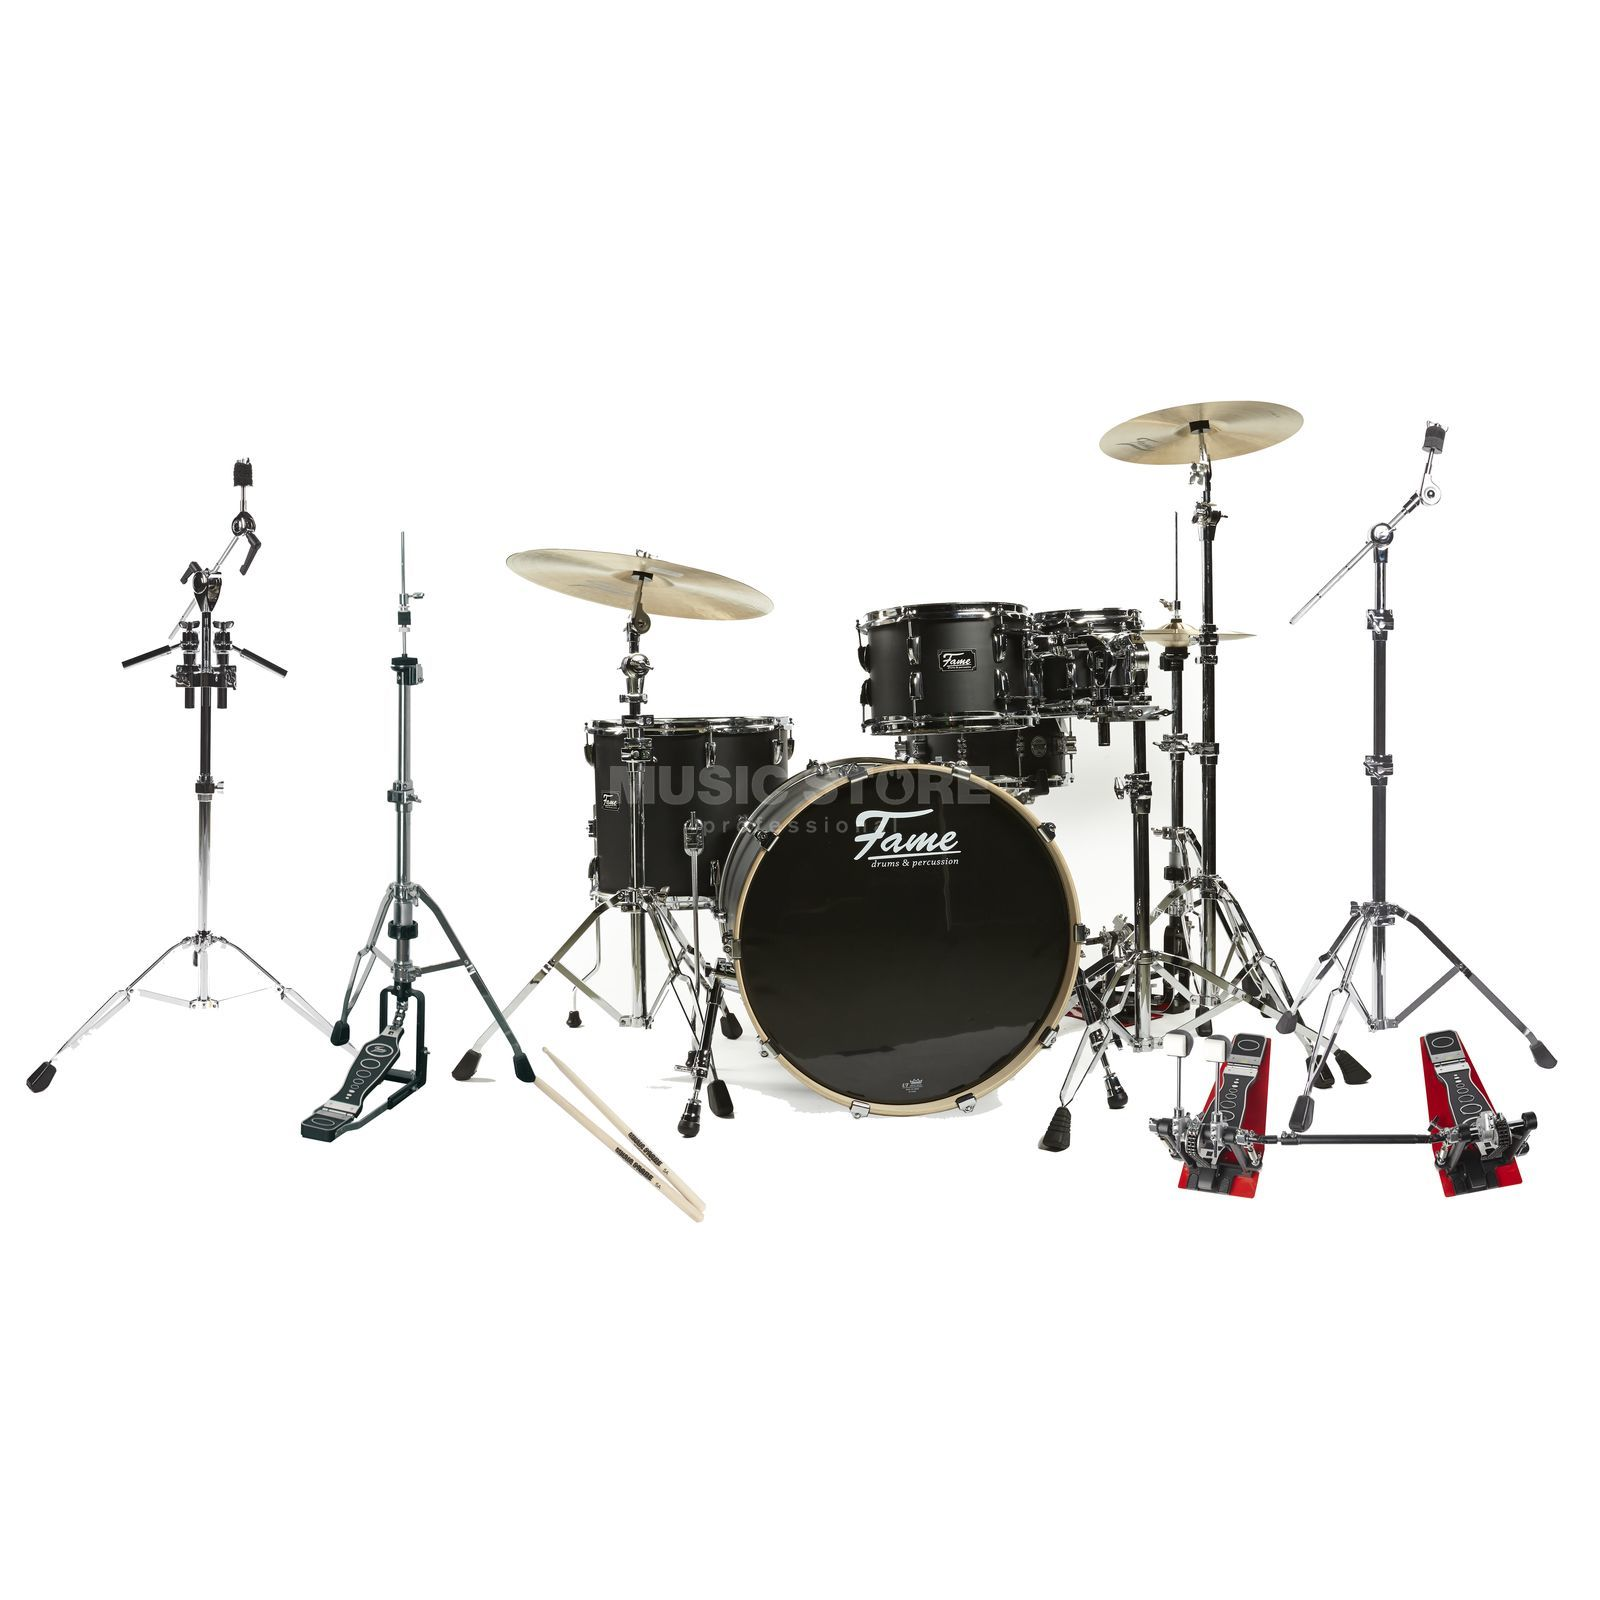 SET Fame Fire Stage DrumSet 4220, #Matte Black incl. Hardware 2 Produktbild